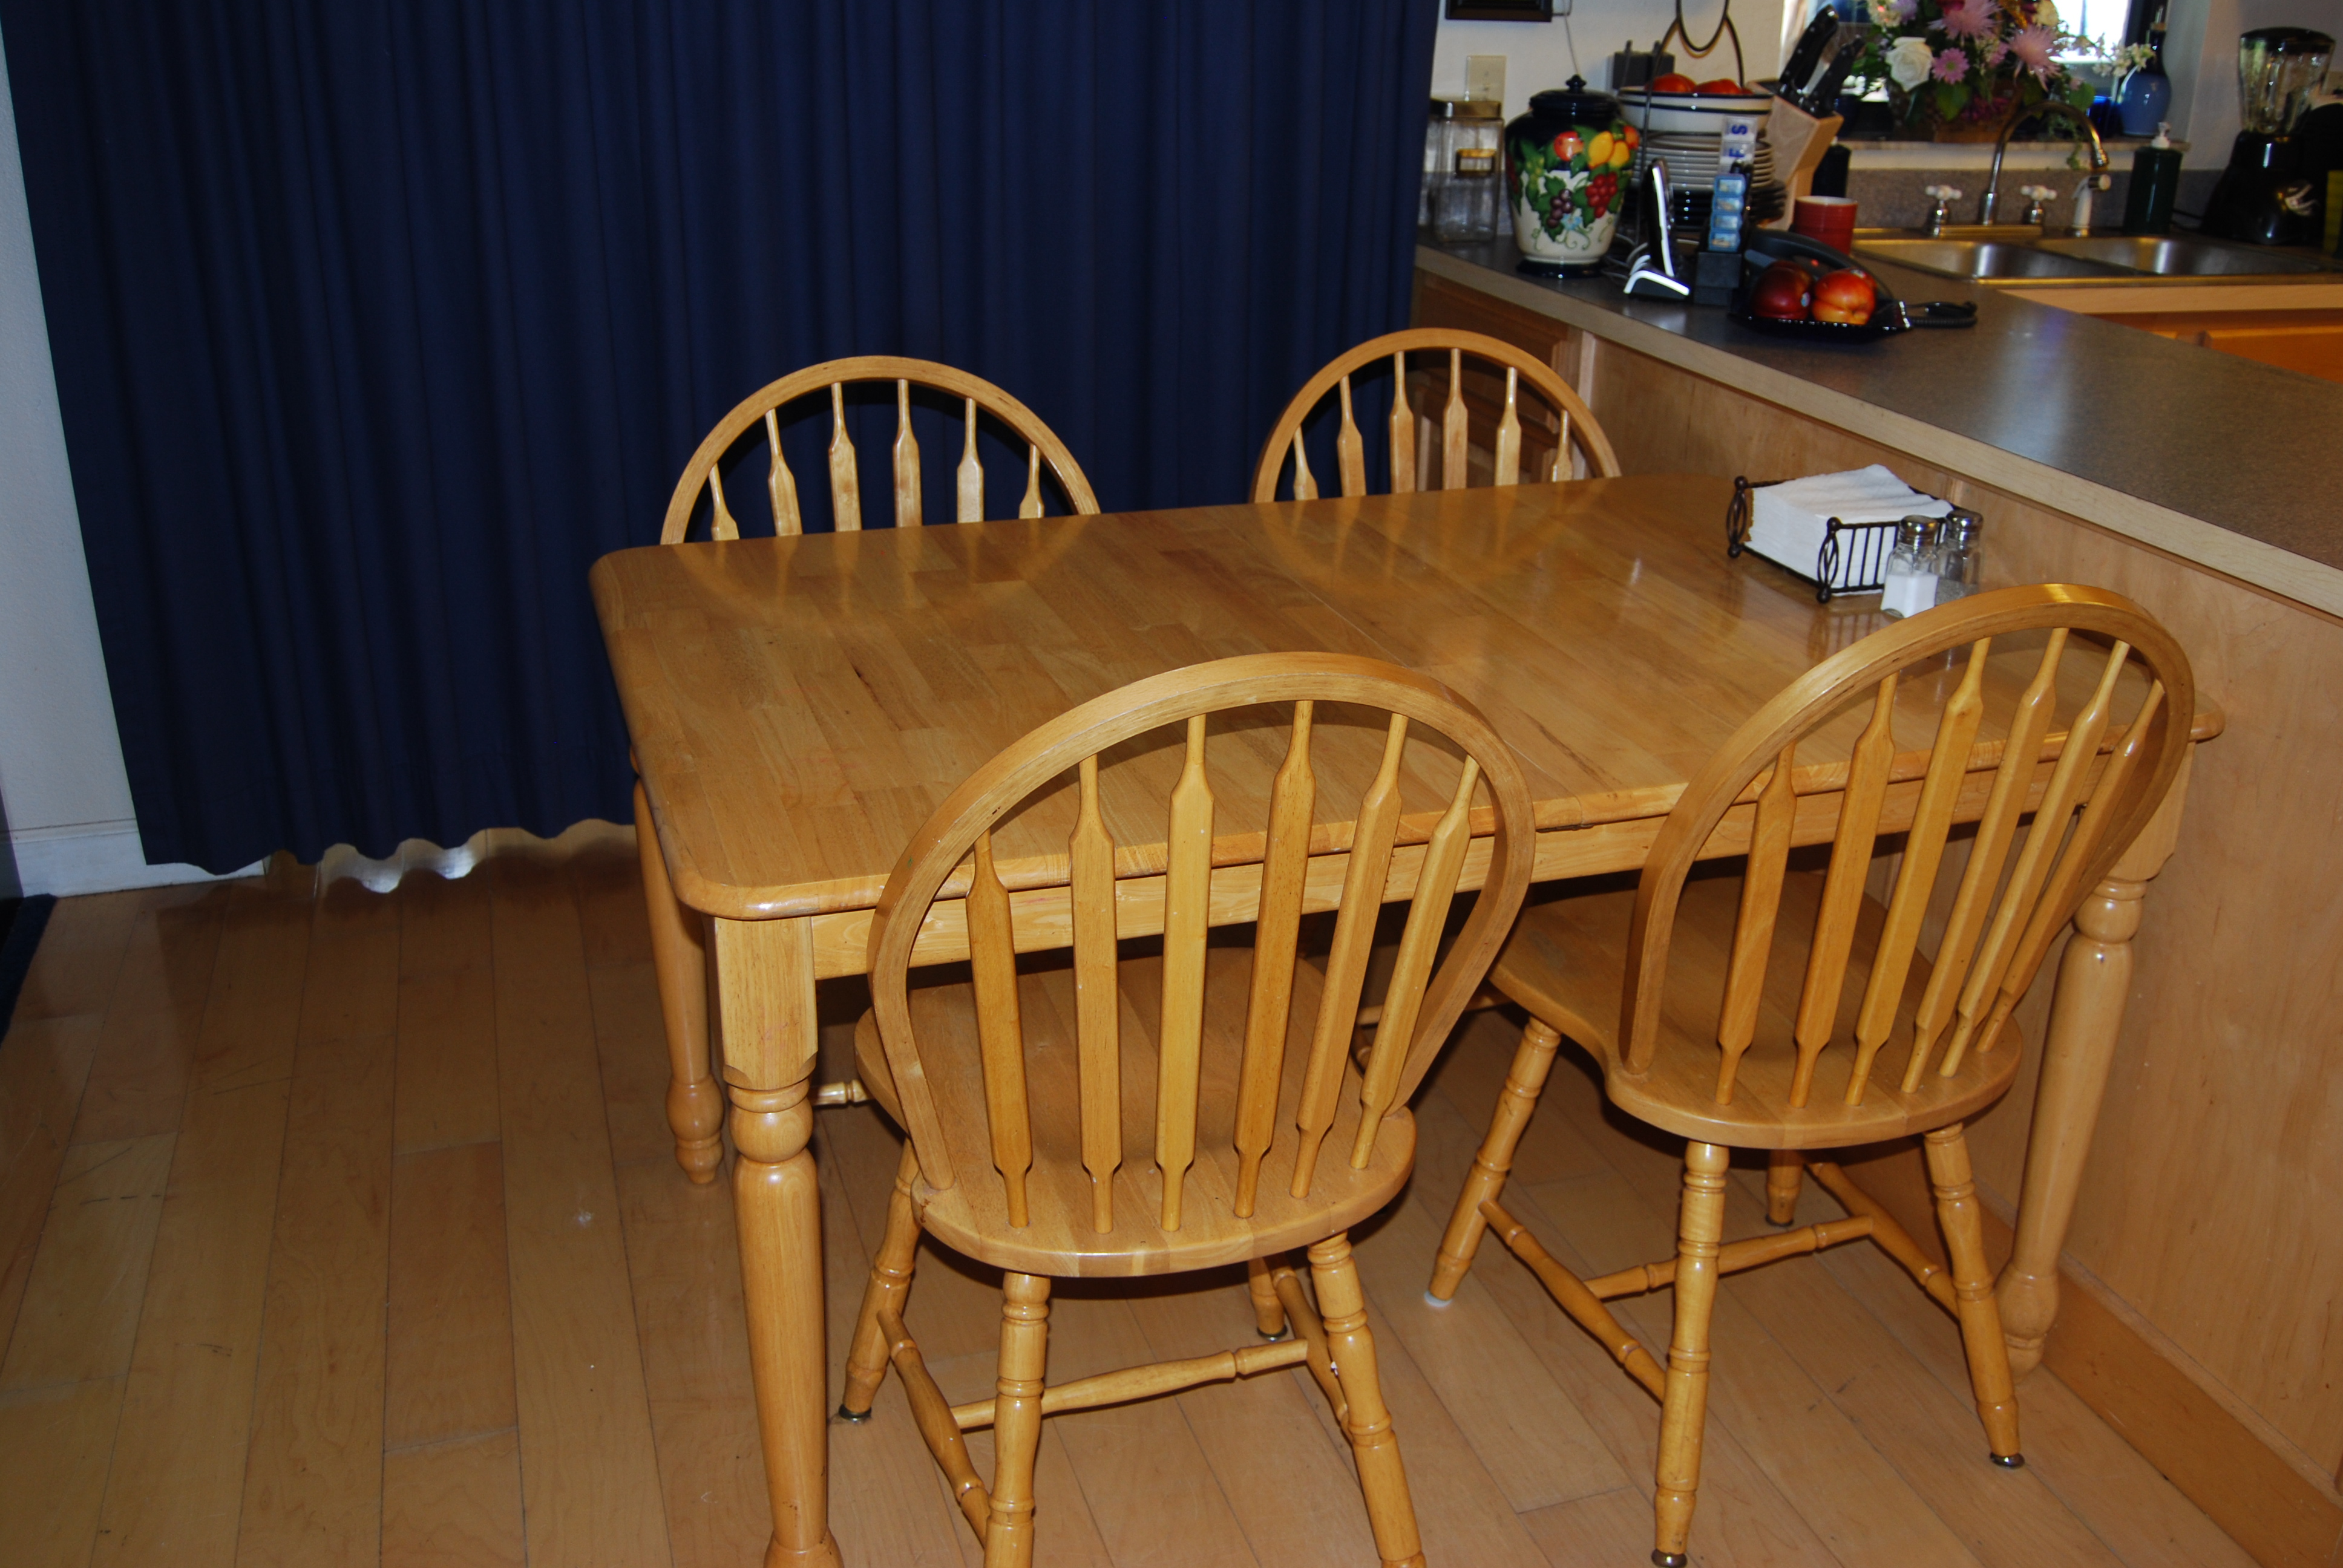 wooden kitchen tables and chairs kitchen wooden chairs Wooden kitchen tables and chairs Photo 1